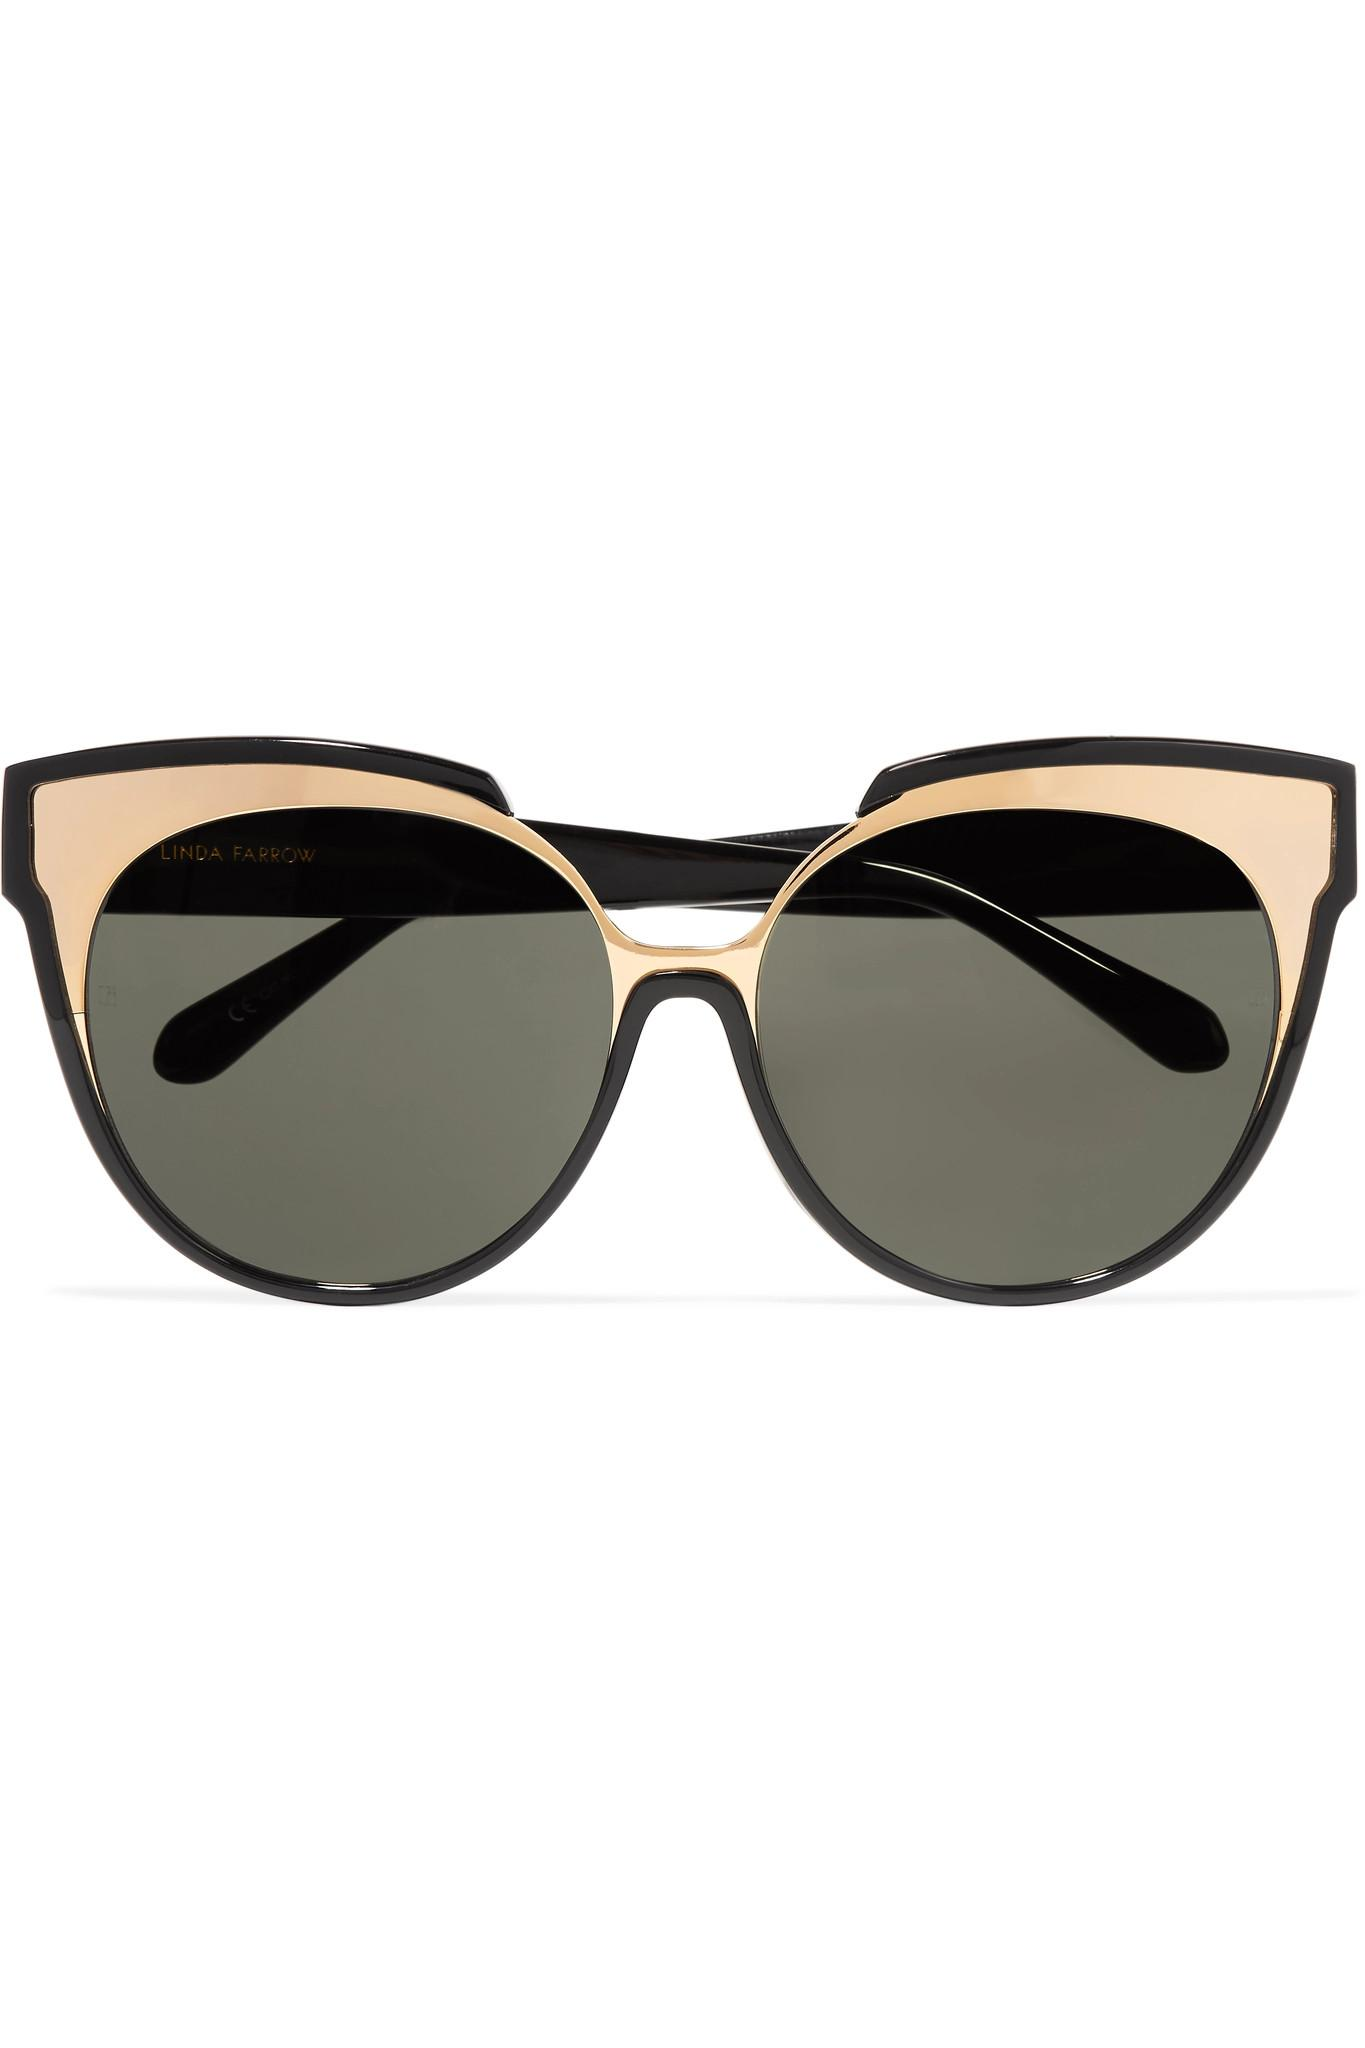 0912c4cdc904 ... Black Cat-eye Gold-tone And Acetate Sunglasses - Lyst. View fullscreen